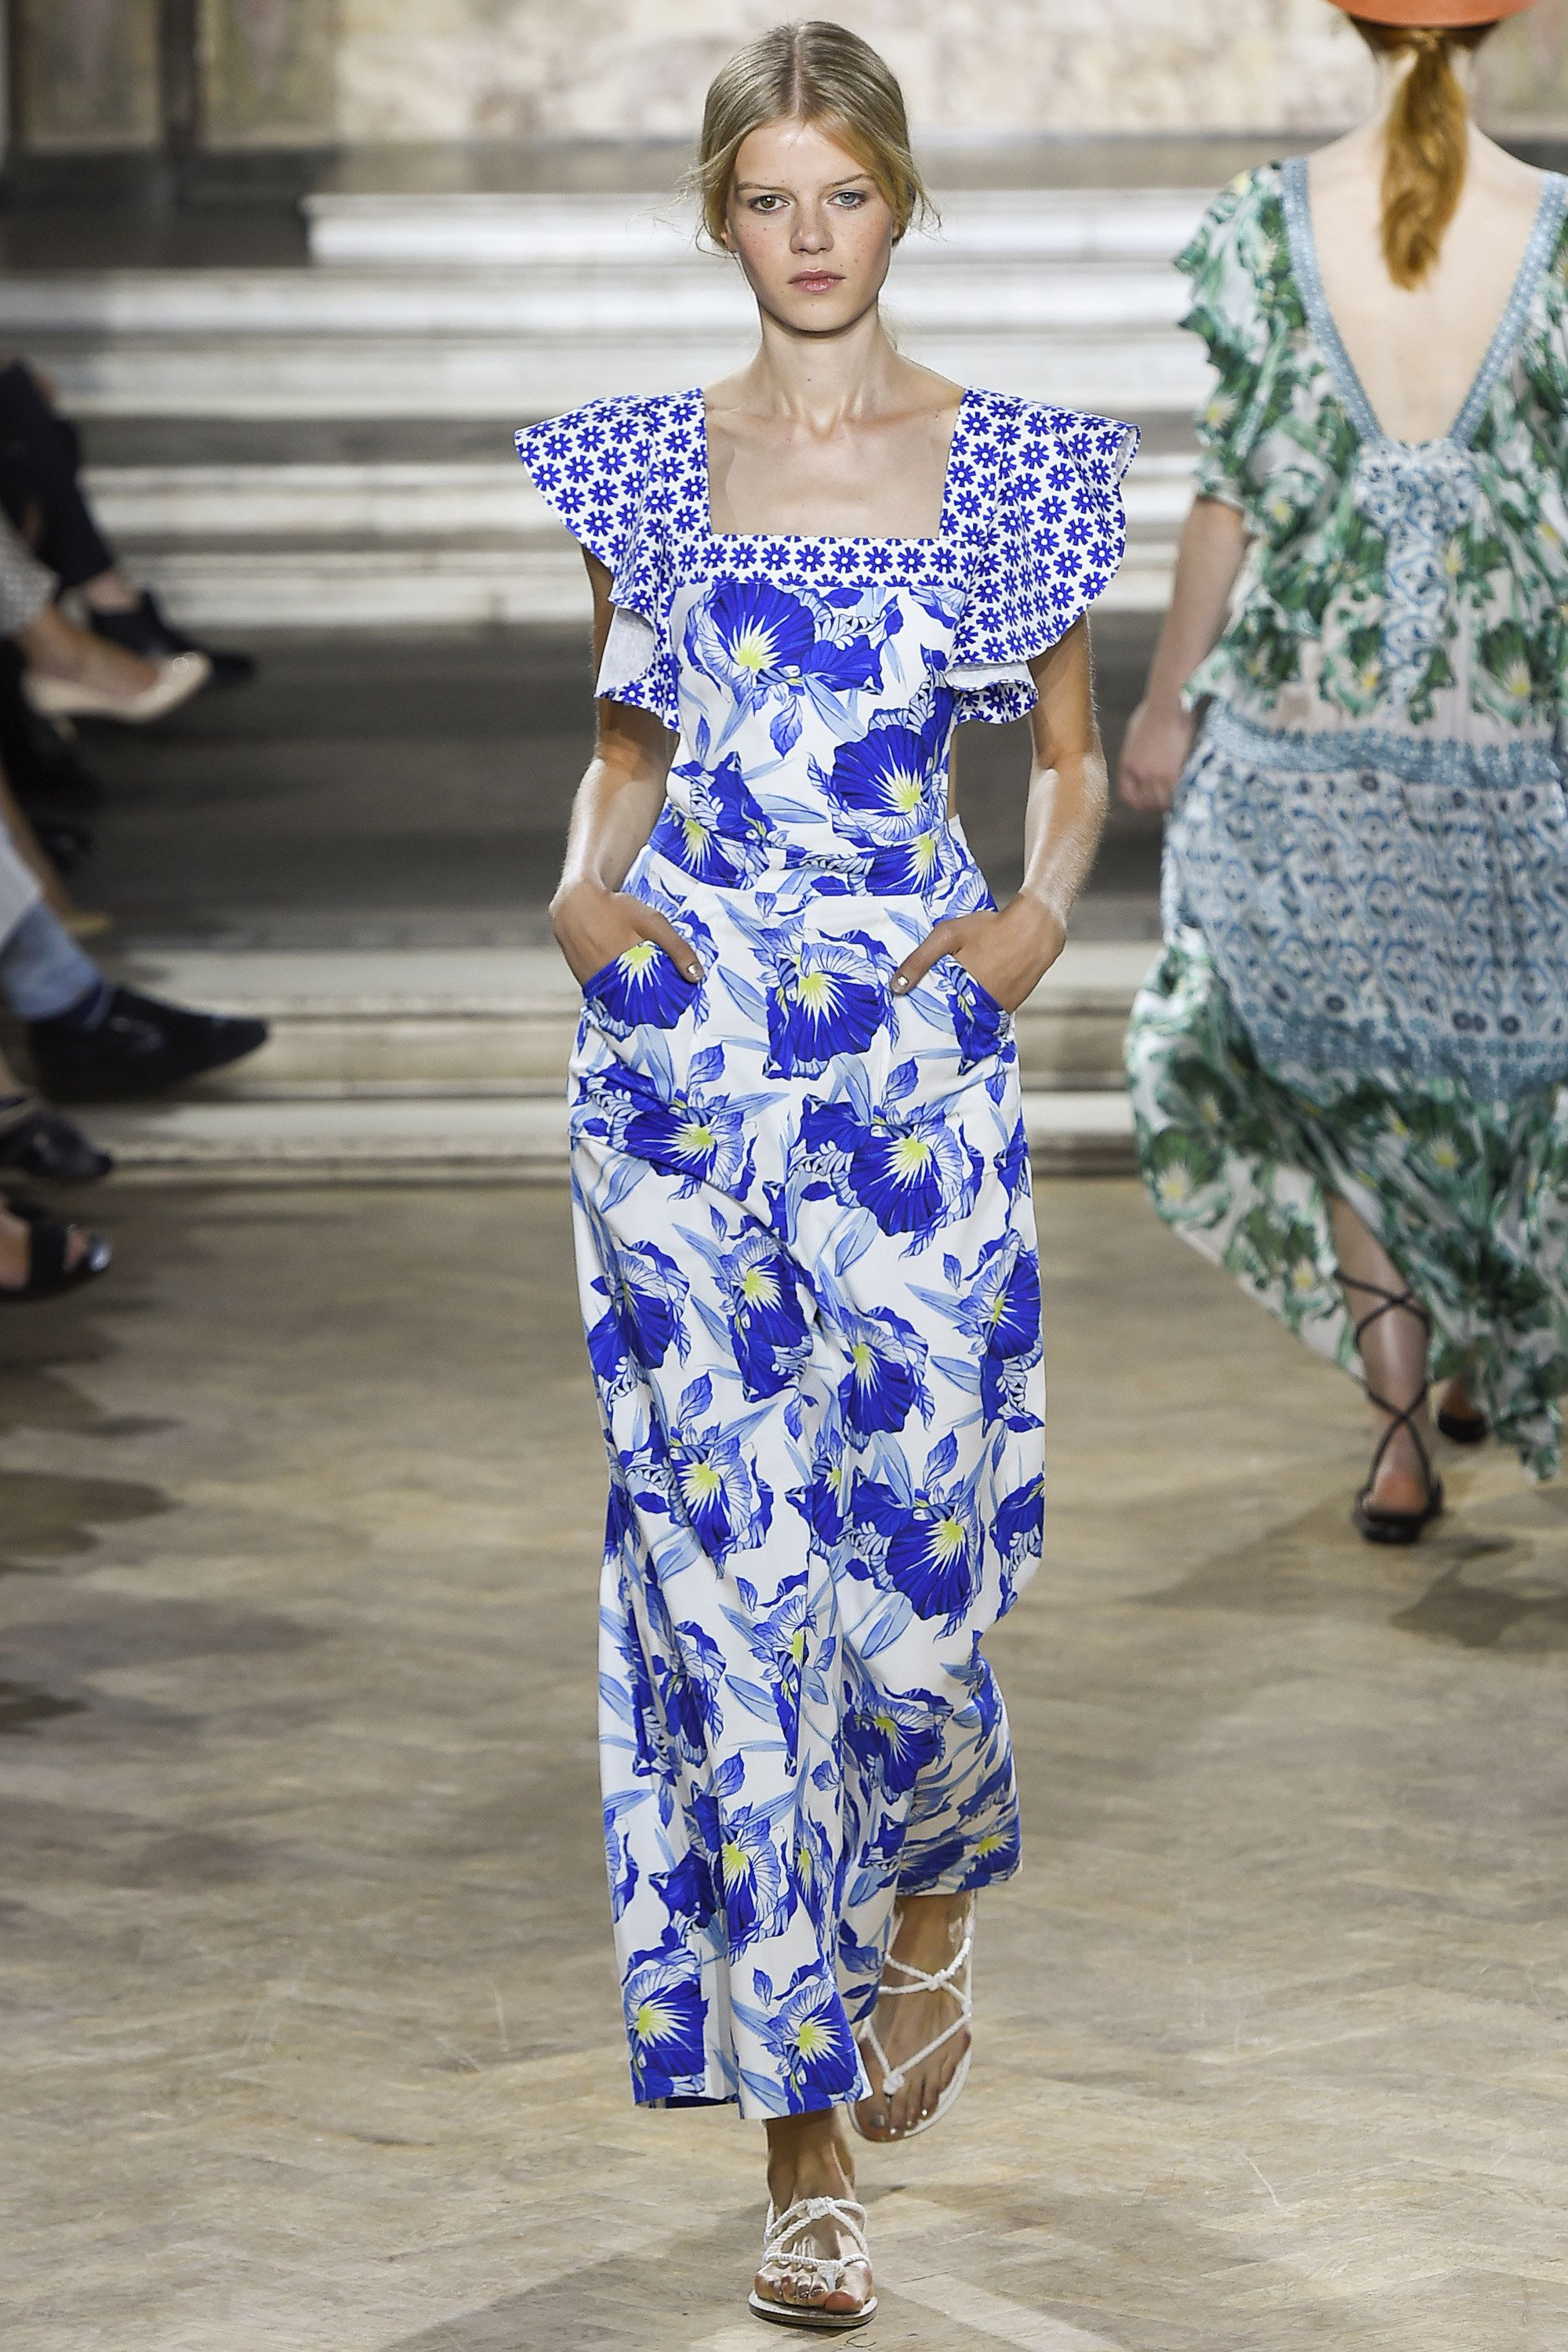 Temperley London Spring 2016 Ready-to-Wear Collection Photos - Vogue  http://www.vogue.com/fashion-shows/spring-2016-ready-to-wear/temperley-london/slideshow/collection#9